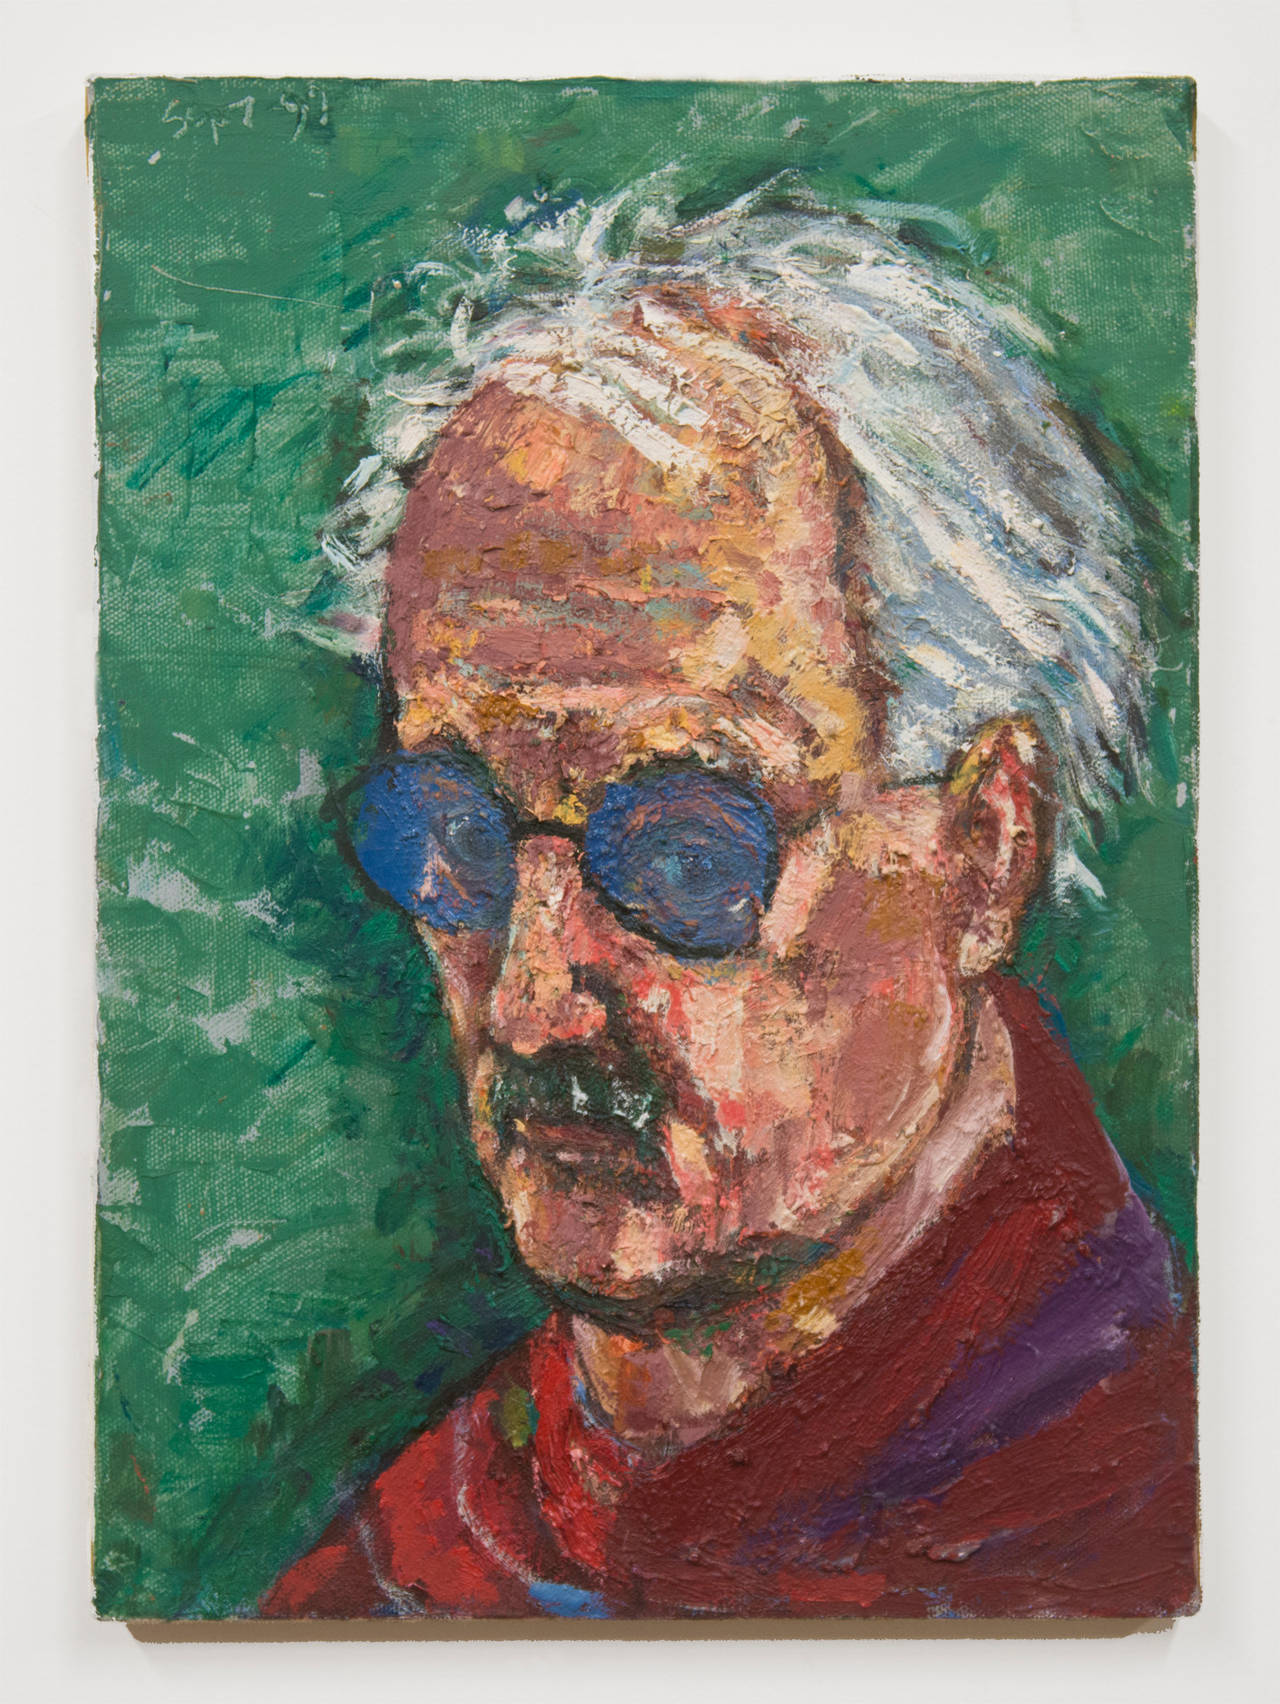 Self Portrait with Glasses